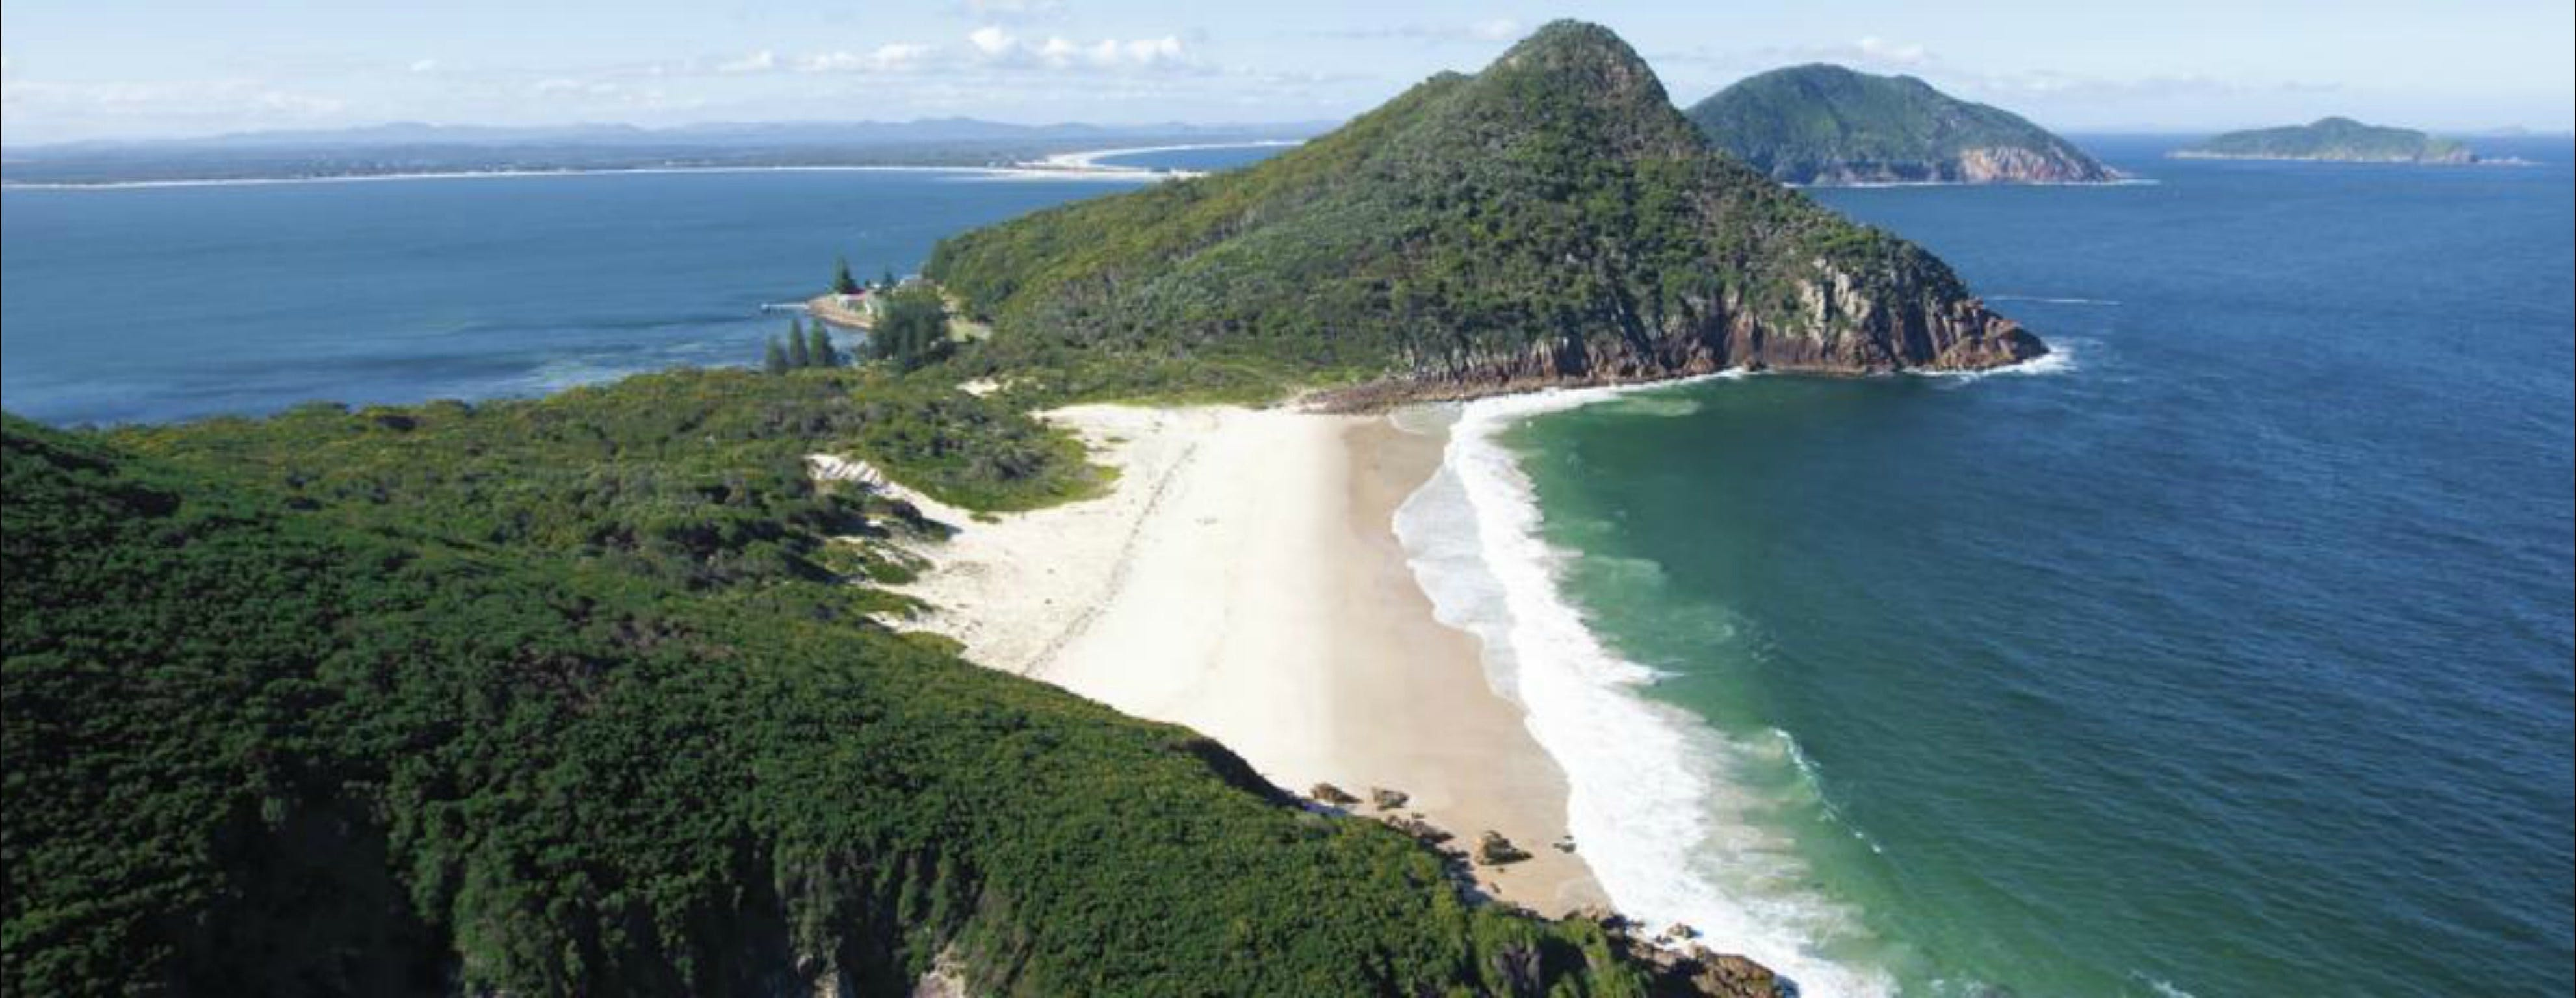 Port Stephens Great Lakes Marine Park - Tourism TAS